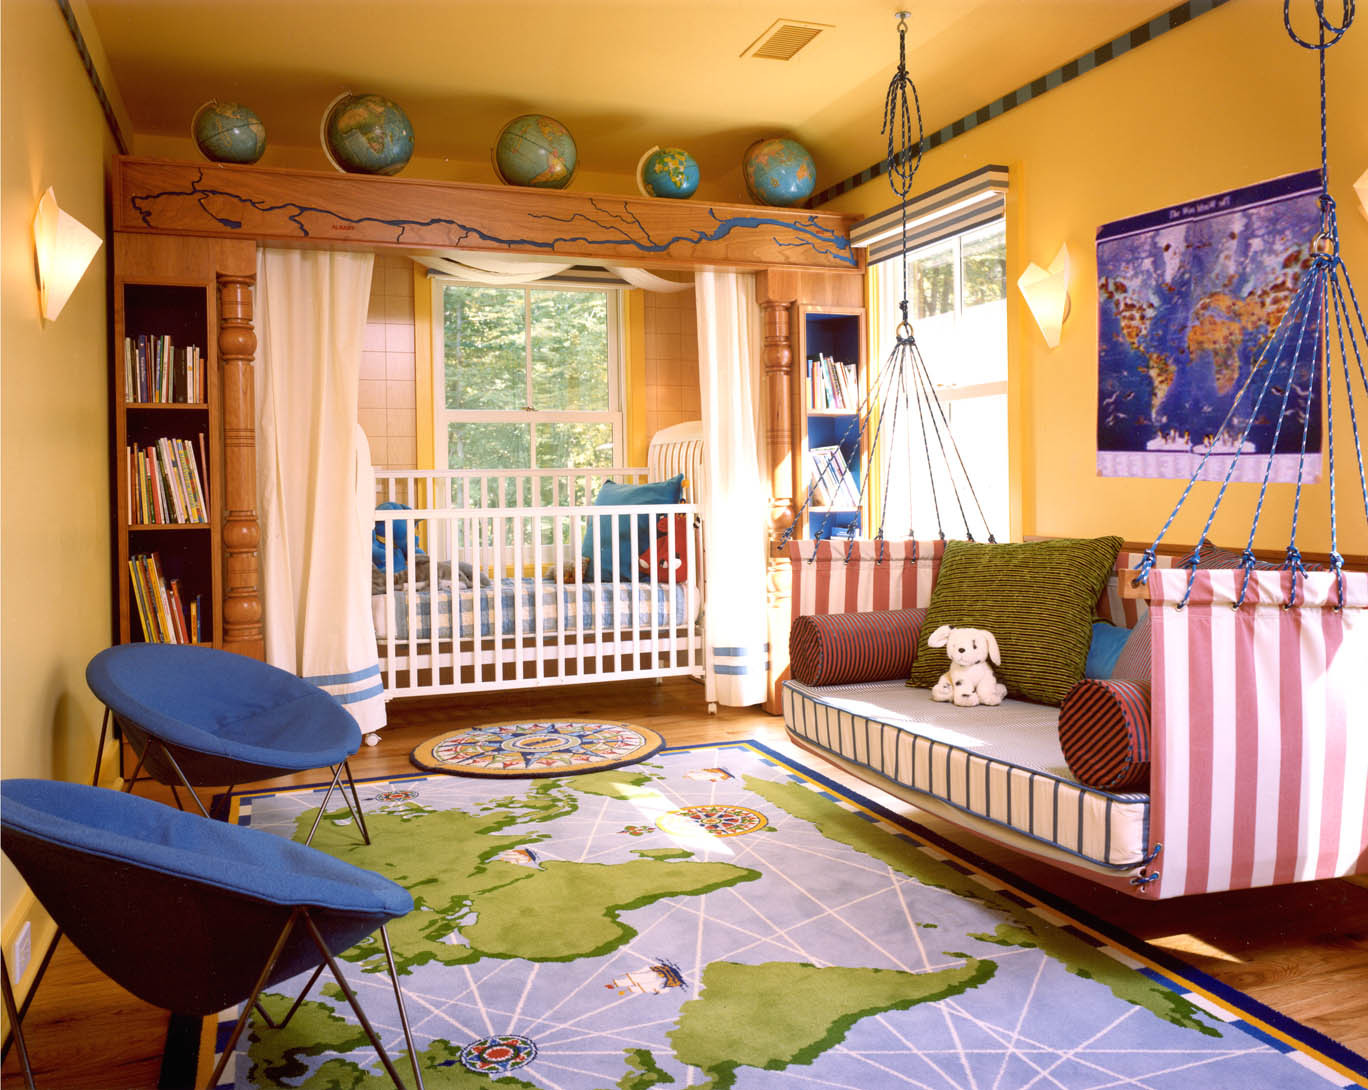 Best ideas about Kids Room Curtains Ideas . Save or Pin 15 Nice Kids Room Decor Ideas With Example Pics Now.